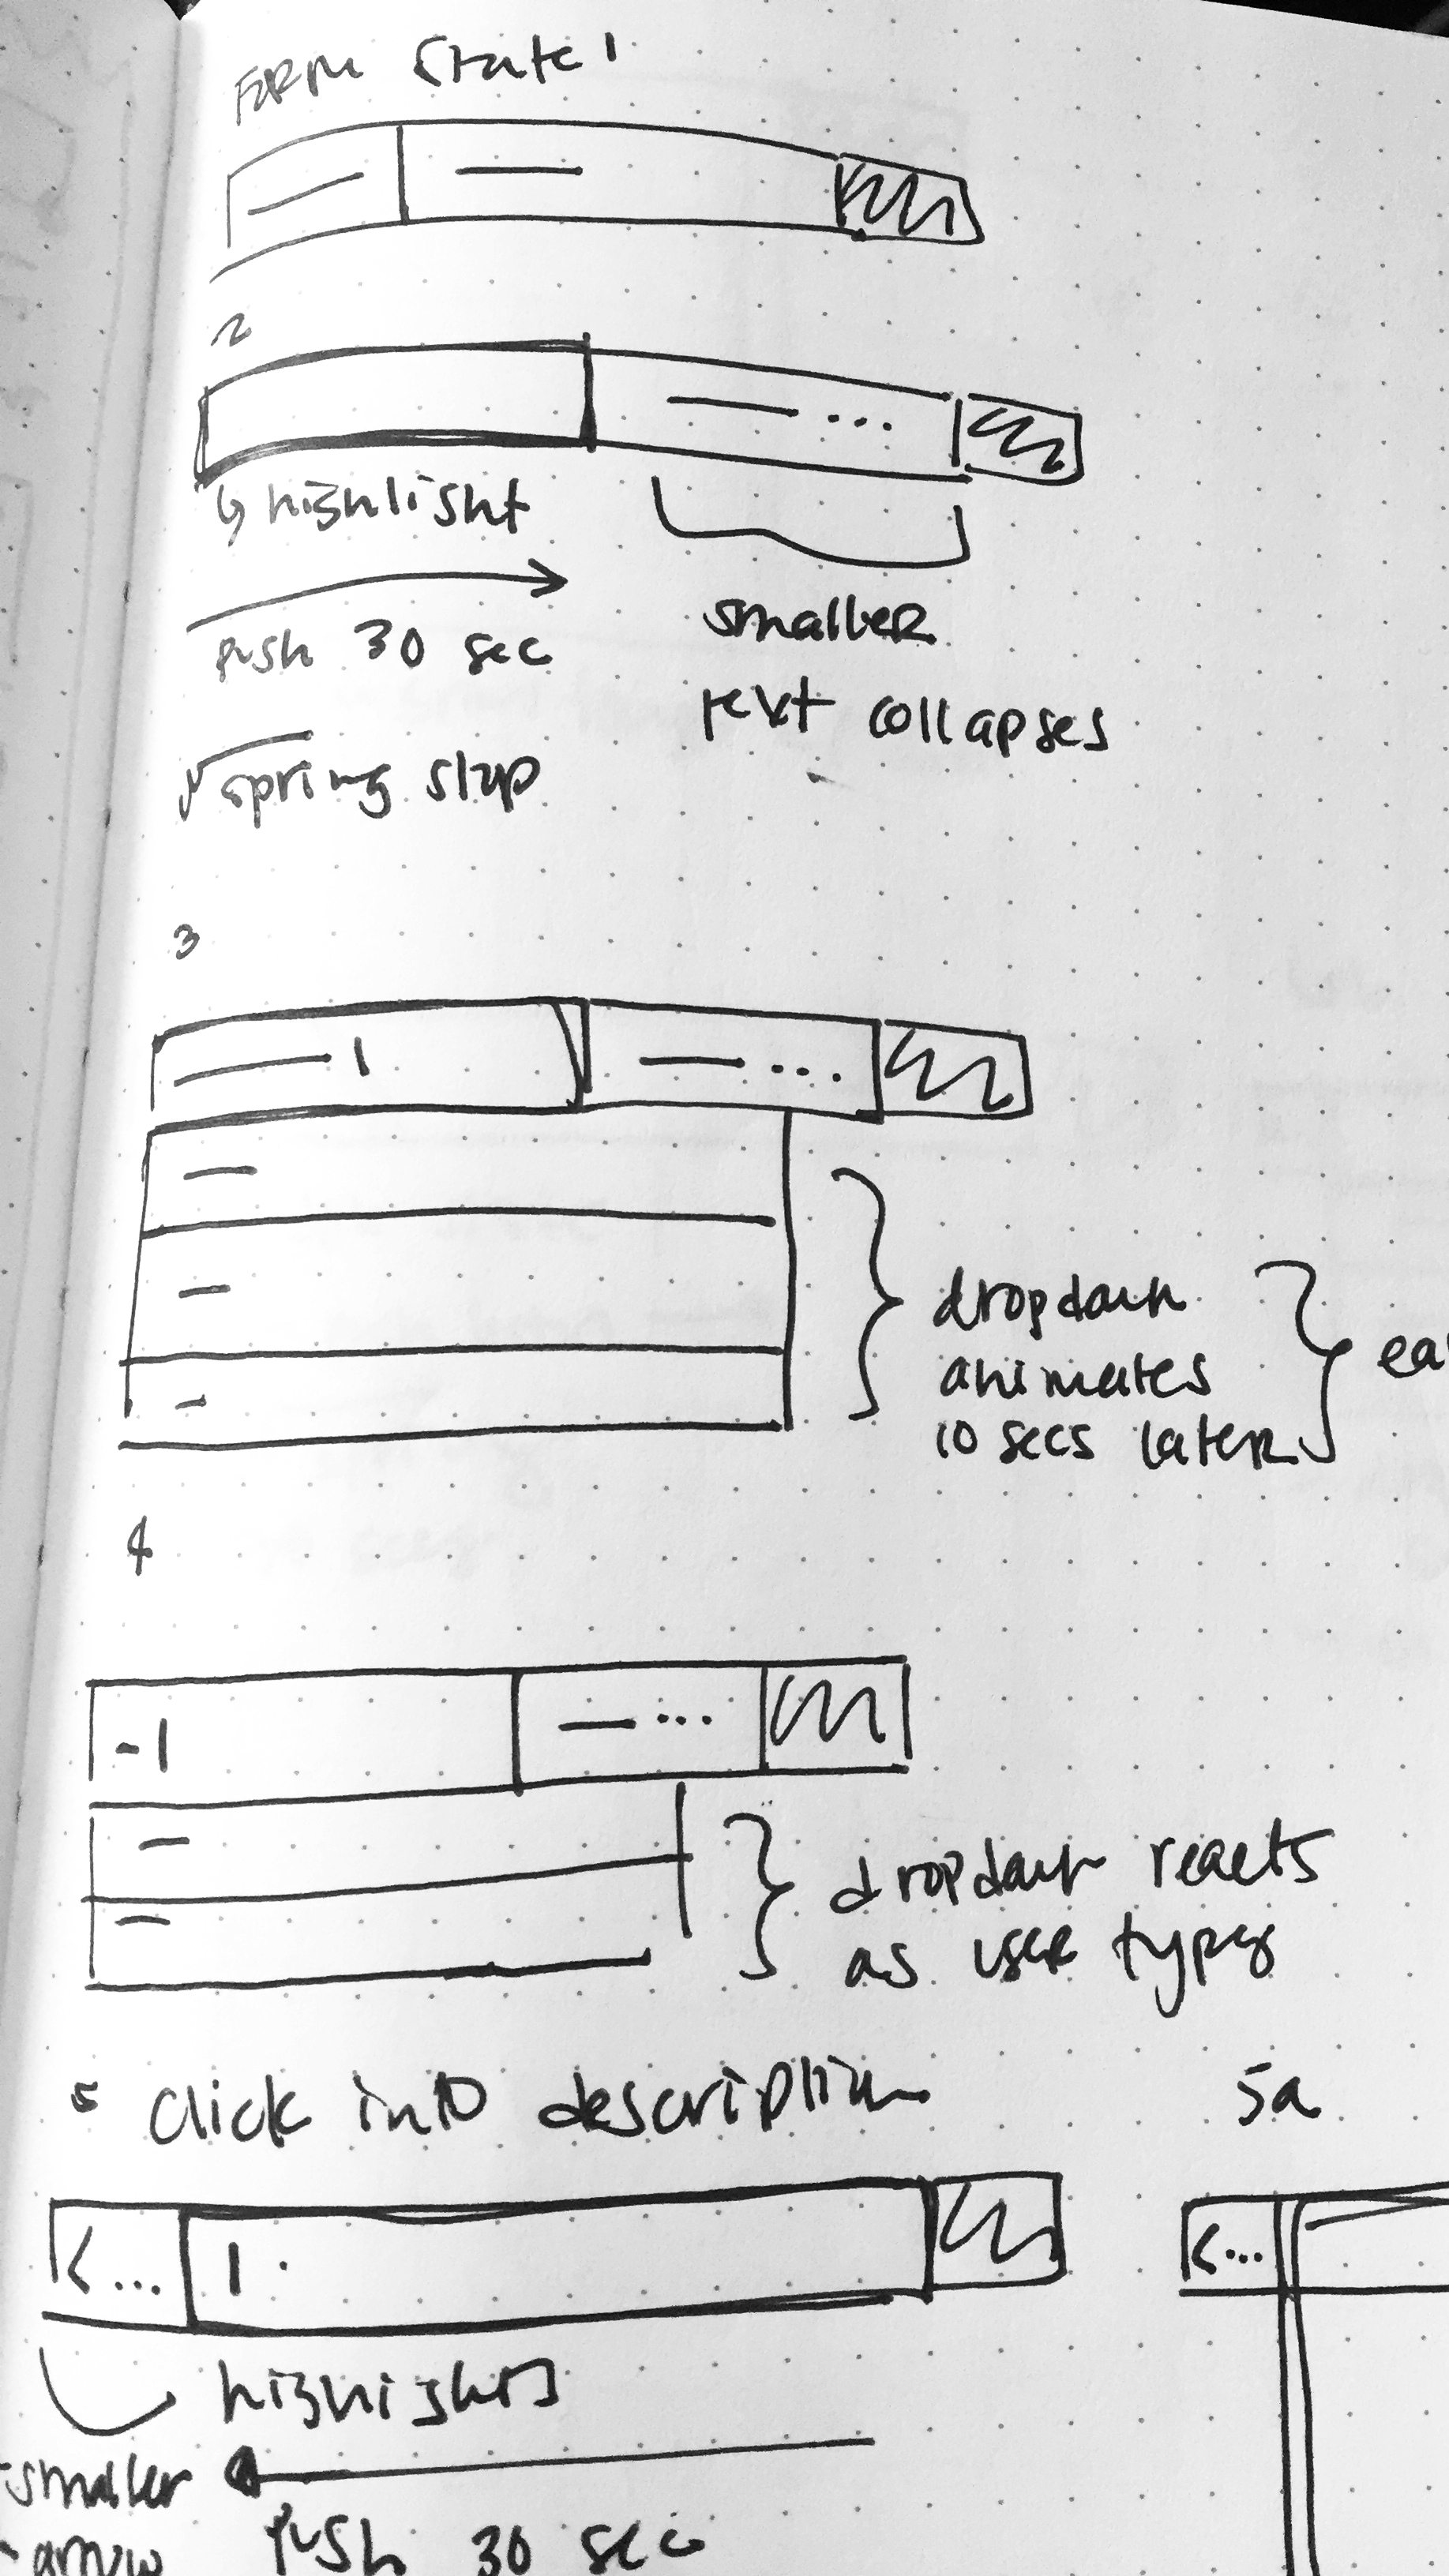 sketches - Started out the process sketching, exploring how we could make search feel more friendly and get more information from the students in one step, making it feel more lightweight than the current process of doing multiple steps.